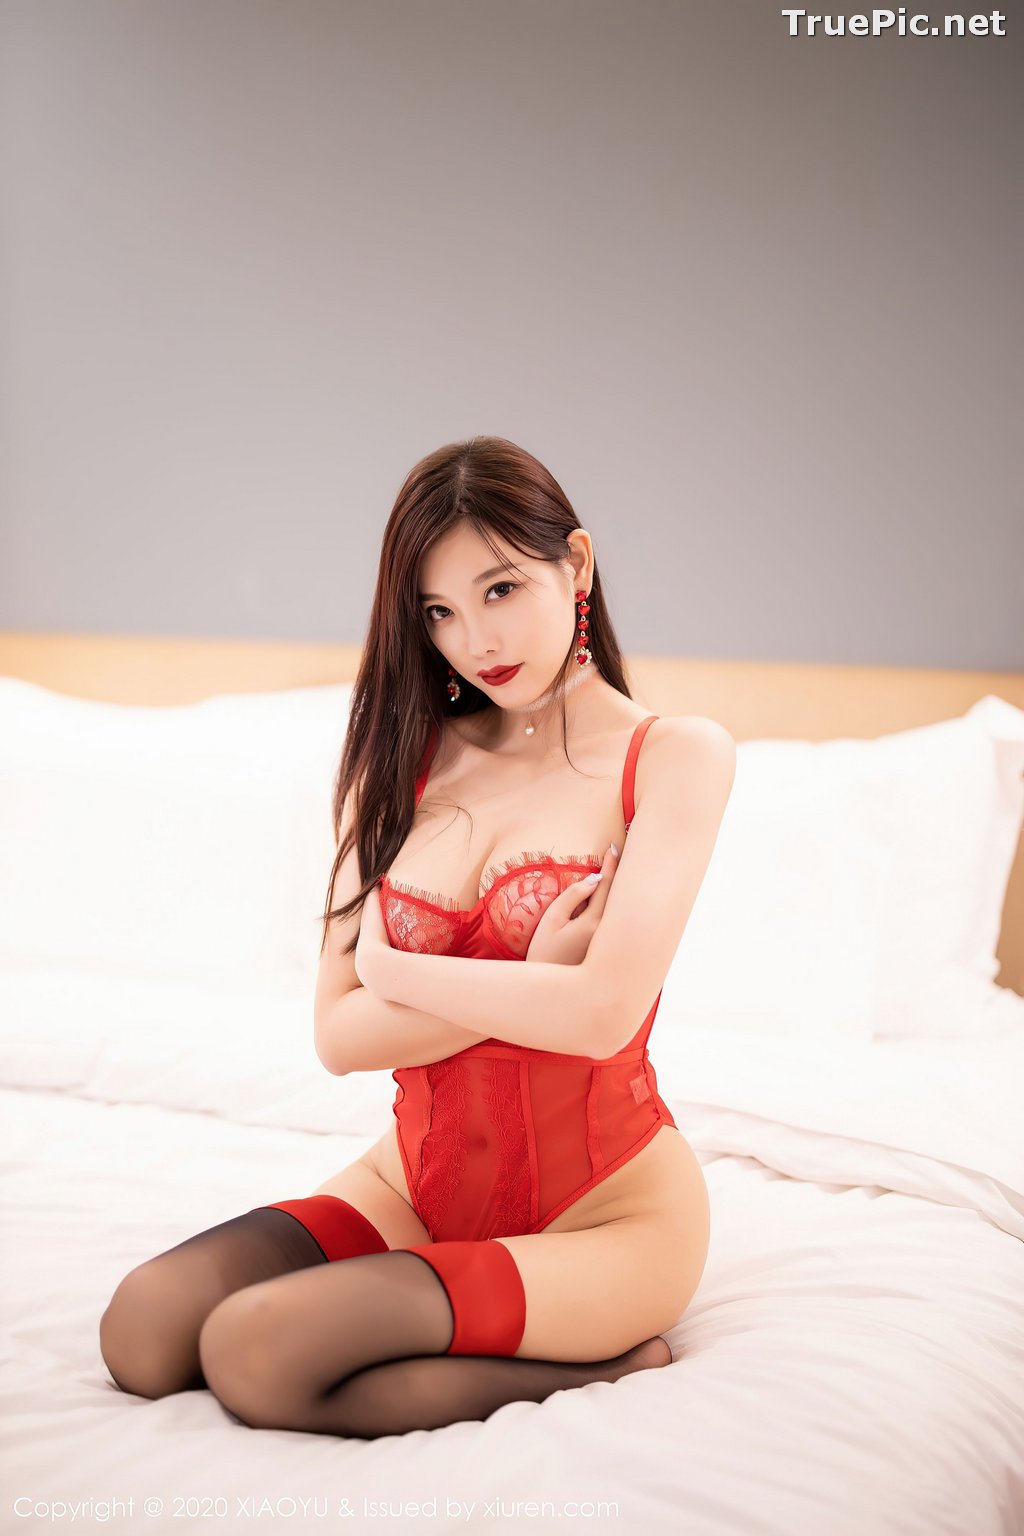 Image XiaoYu Vol.413 - Chinese Model - Yang Chen Chen (杨晨晨sugar)- Red Crystal-clear Lingerie - TruePic.net - Picture-46